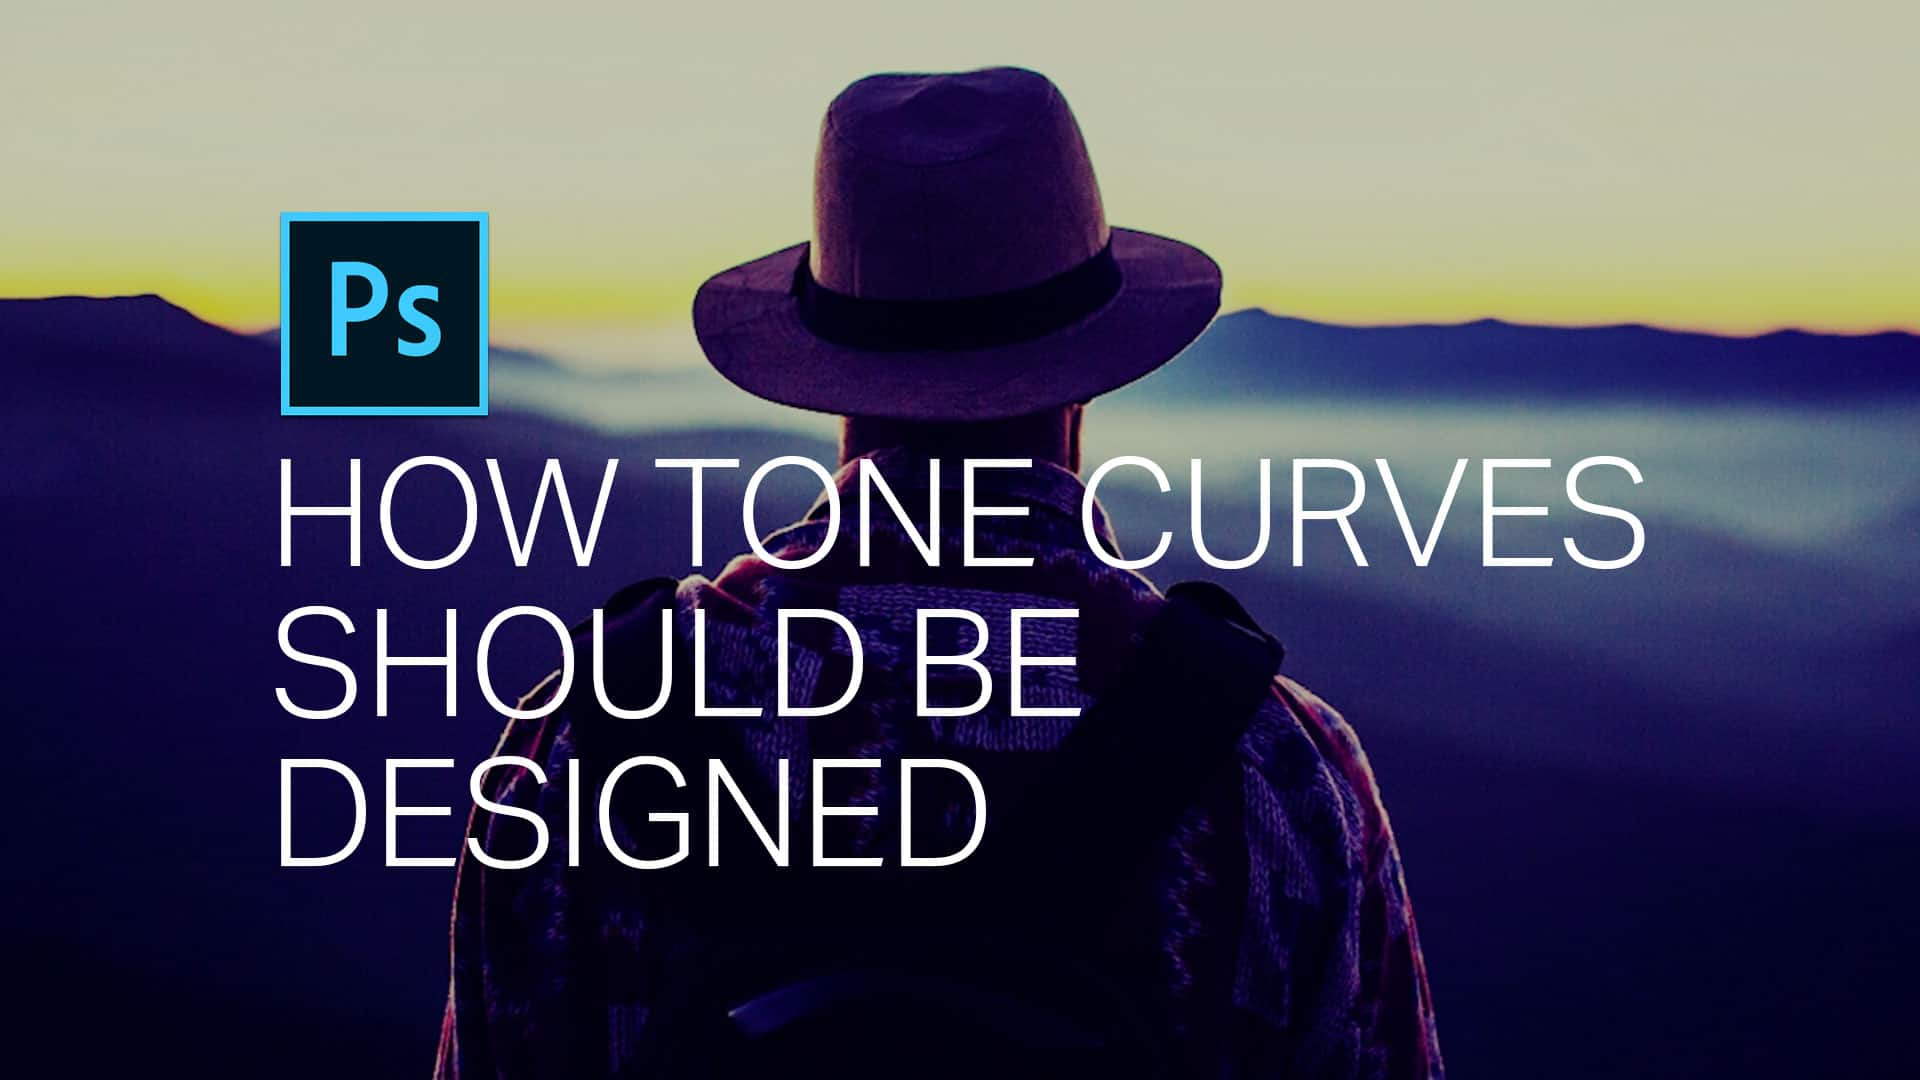 How to Redesign for the Tone Curves